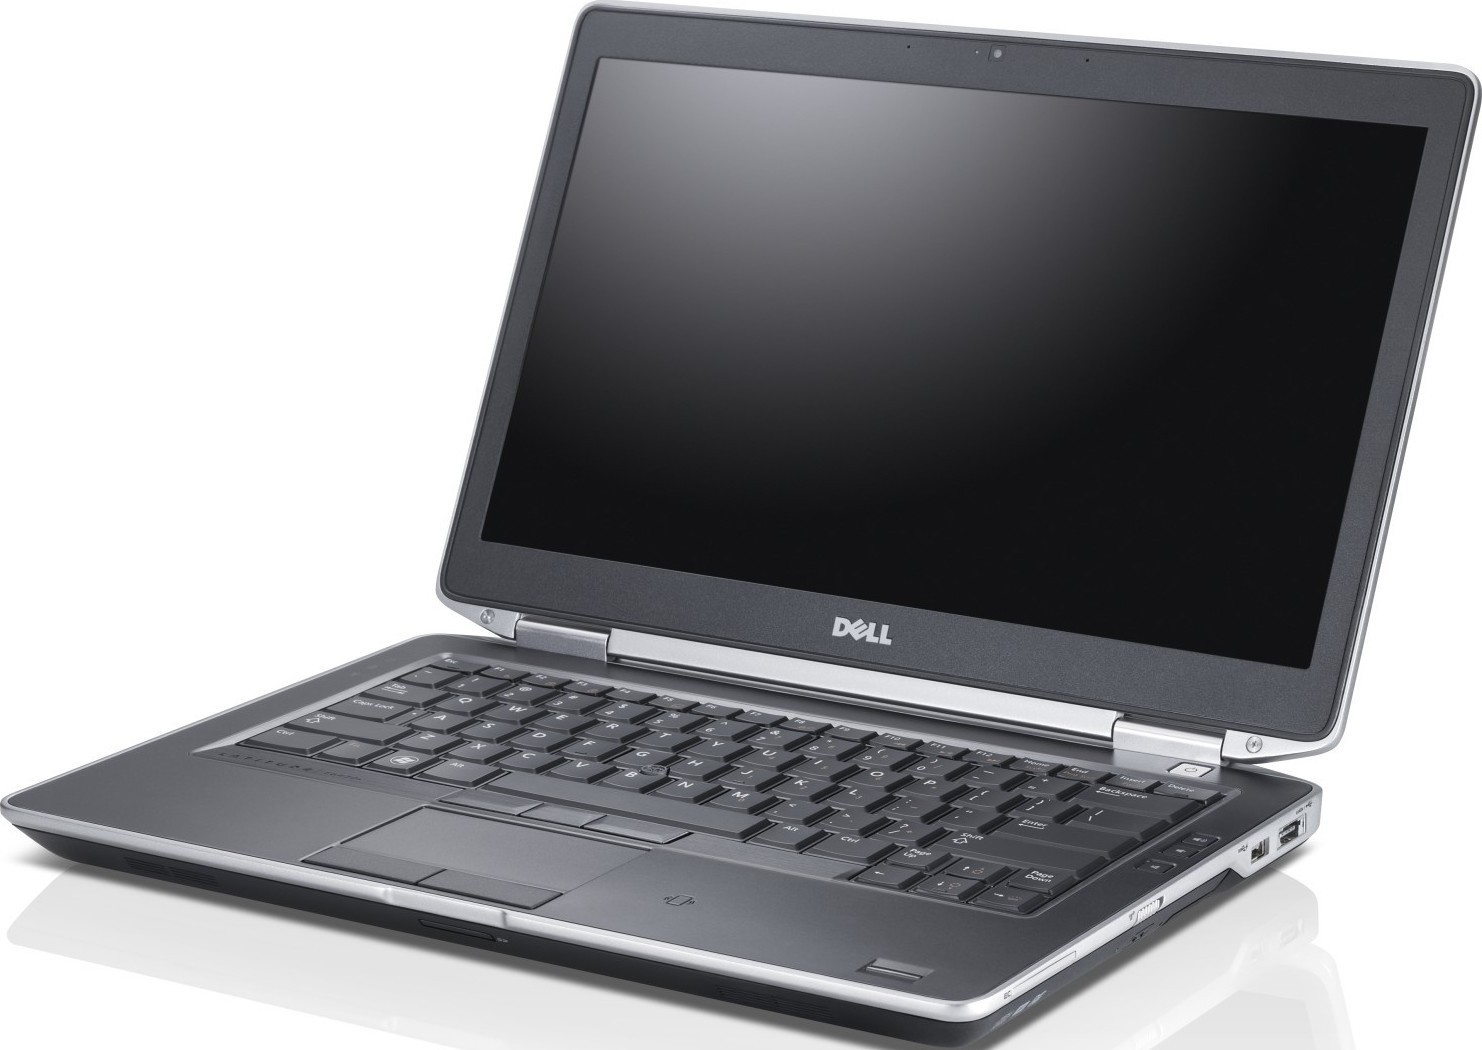 Dell Latitude E6420 Notebook Intel Management Interface Linux